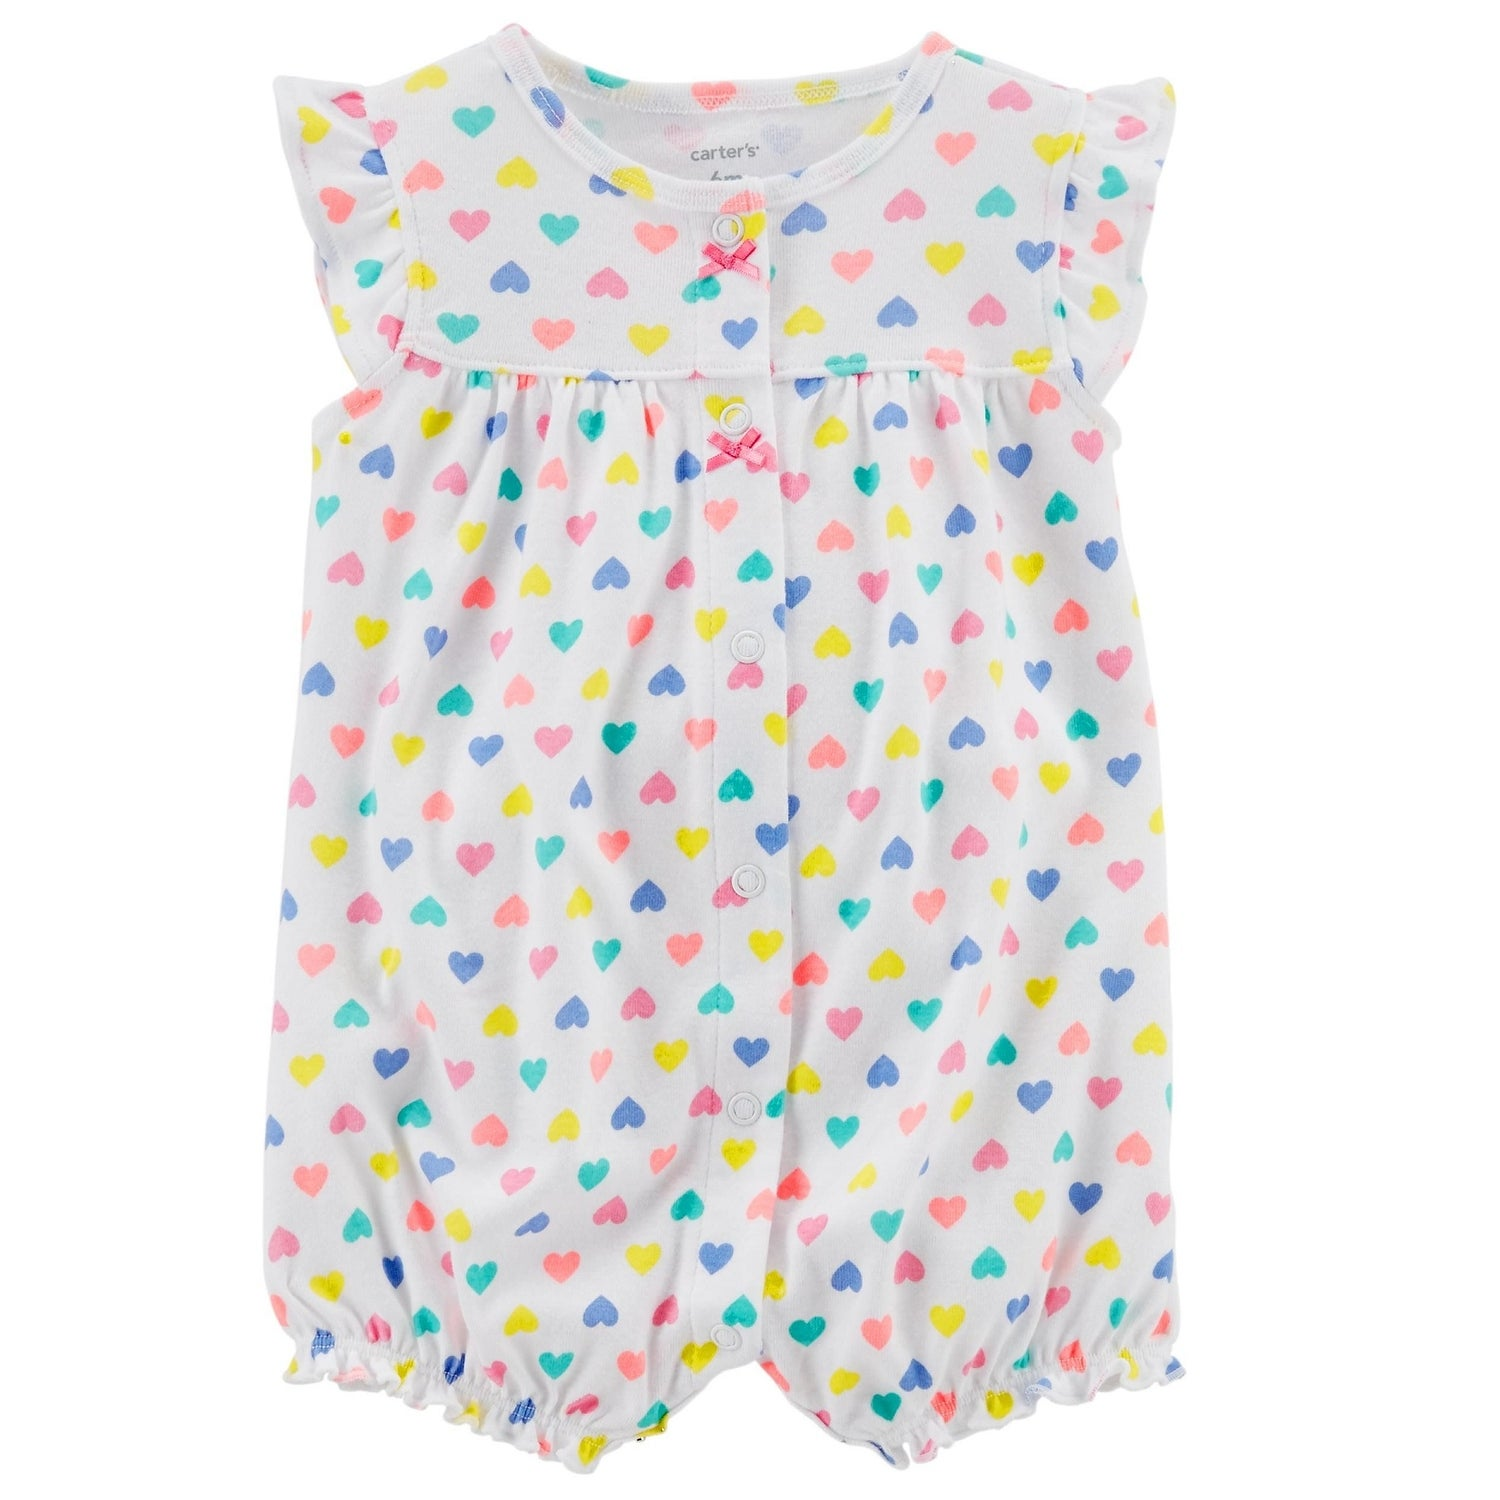 54cc466fa Carter's Girls' Clothing | Find Great Baby Clothing Deals Shopping at  Overstock